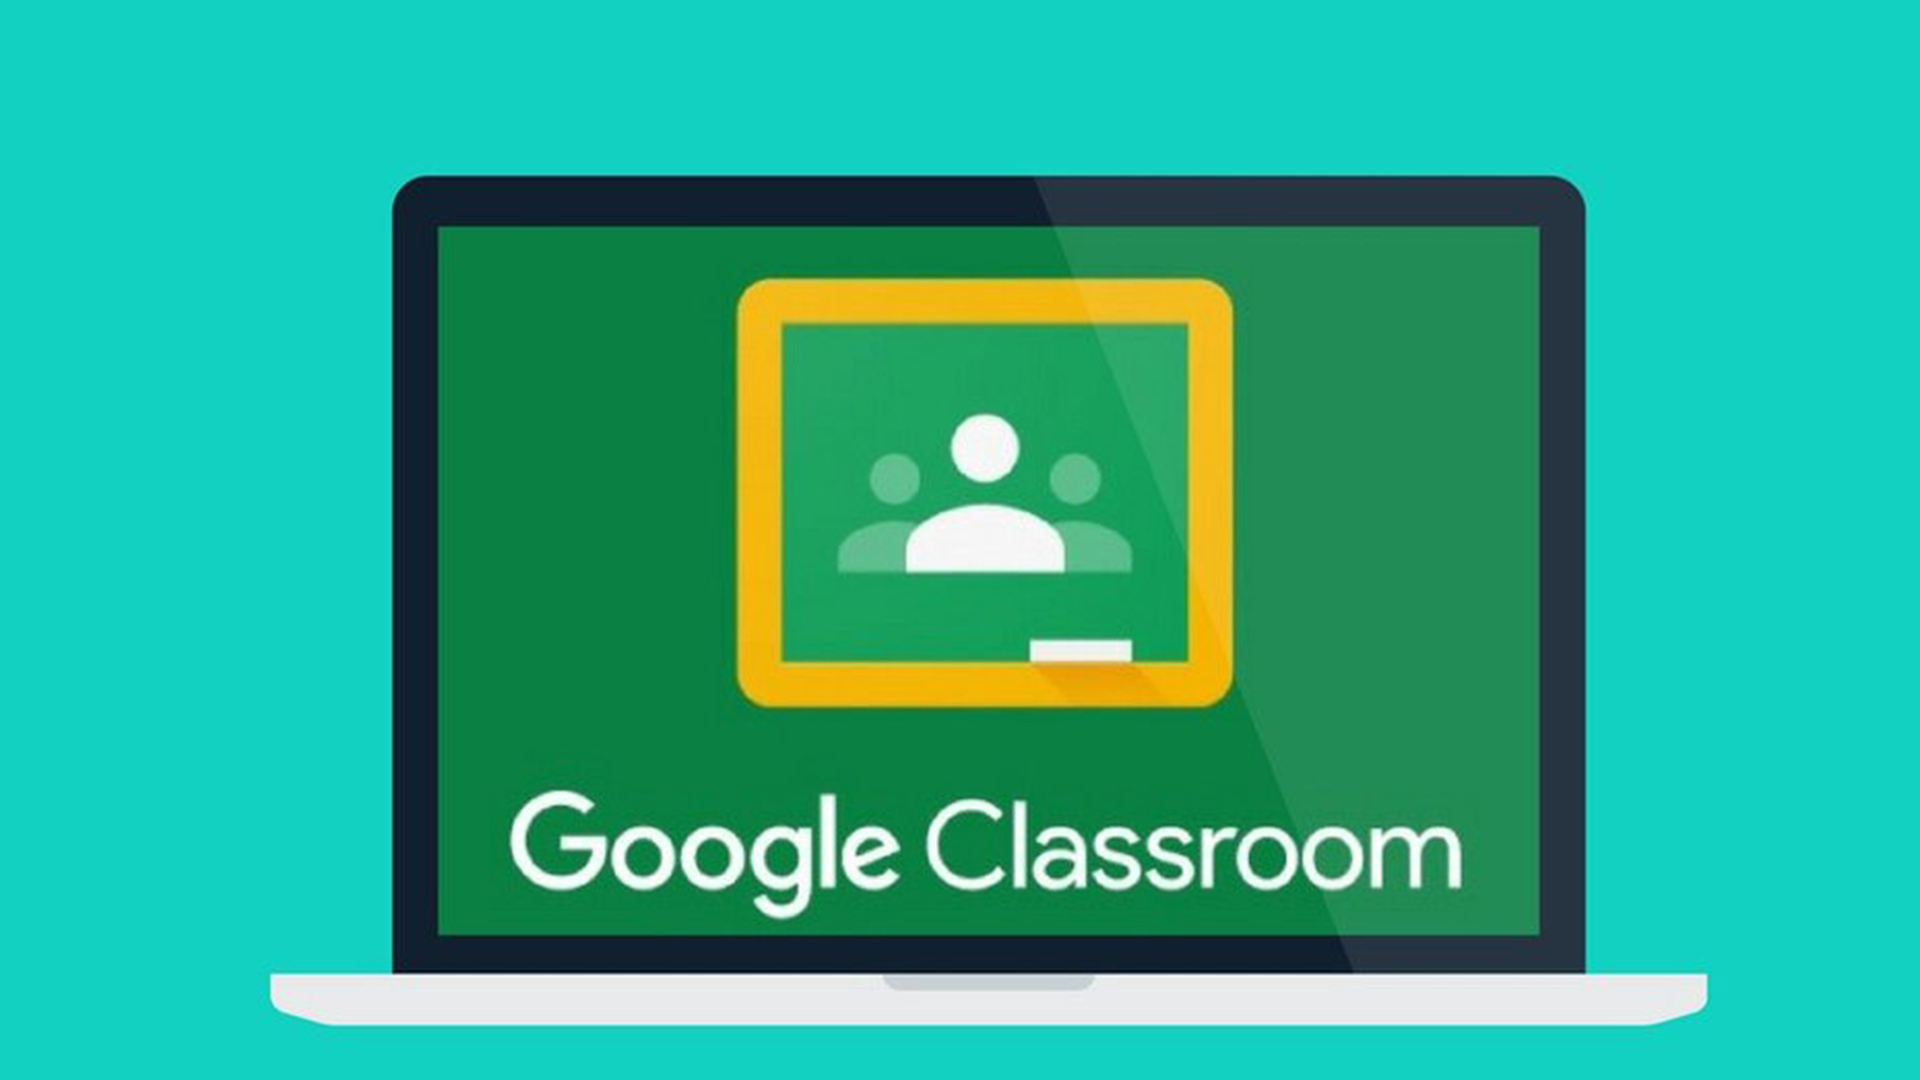 Download Google Classroom on PC - League of Legends: Wild Riftis a revised version of the world-famous game, known for its rich lore, fun-filled strategy-packed team game, and a strong and competitive pro scene.It features the action-packed5 v 5MOBAaction with the map being smaller, dual joystick controls, and short games. The goal of this Map guide is to inform you of the new Wild Rift map and its contents in a straight-forward way. After reading the guide, you should have a better understanding of how the game works and how to win it. After reading it all, you won't miss anything! Download League of Legends: Wild Rift on PC Before we get into the Wild Rift Before games begin, each player can group or play with strangers in a match, then grouped into 2 teams of 10 total players. Afterward, players will each select a character of their choice called a champion to play for the match. Lastly, the 2 teams are then will fight against each other: after the game, there is 1 team that is victorious and 1 is defeated. The team must work together to defeat the opposing team. The Wild RiftMap Guide Games take place on the Wild Rift. Each team has a base that they must guard against the opposing team while simultaneously attacking the opposing team's base. There is a total of 3 lanes, which champions go to push through the opposing team's base. There is also ajunglewhere monsters that give benefits to your champion reside (which will be discussed in another section of the guide). Everything on your team's side of the map is mirrored to the opposing team's. Nexus TheNexuscan be located at the back of each team's base. You win the game by destroying the one on the opposing team's base, and your team needs to prevent the enemy from destroying yours. Turrets There are a total of9 turrets that guards the Nexus. These turrets attack any enemy within its limited range. A turret is stronger the closer it is to The Nexus (describe via tiers). Destroying these turrets will now enable to